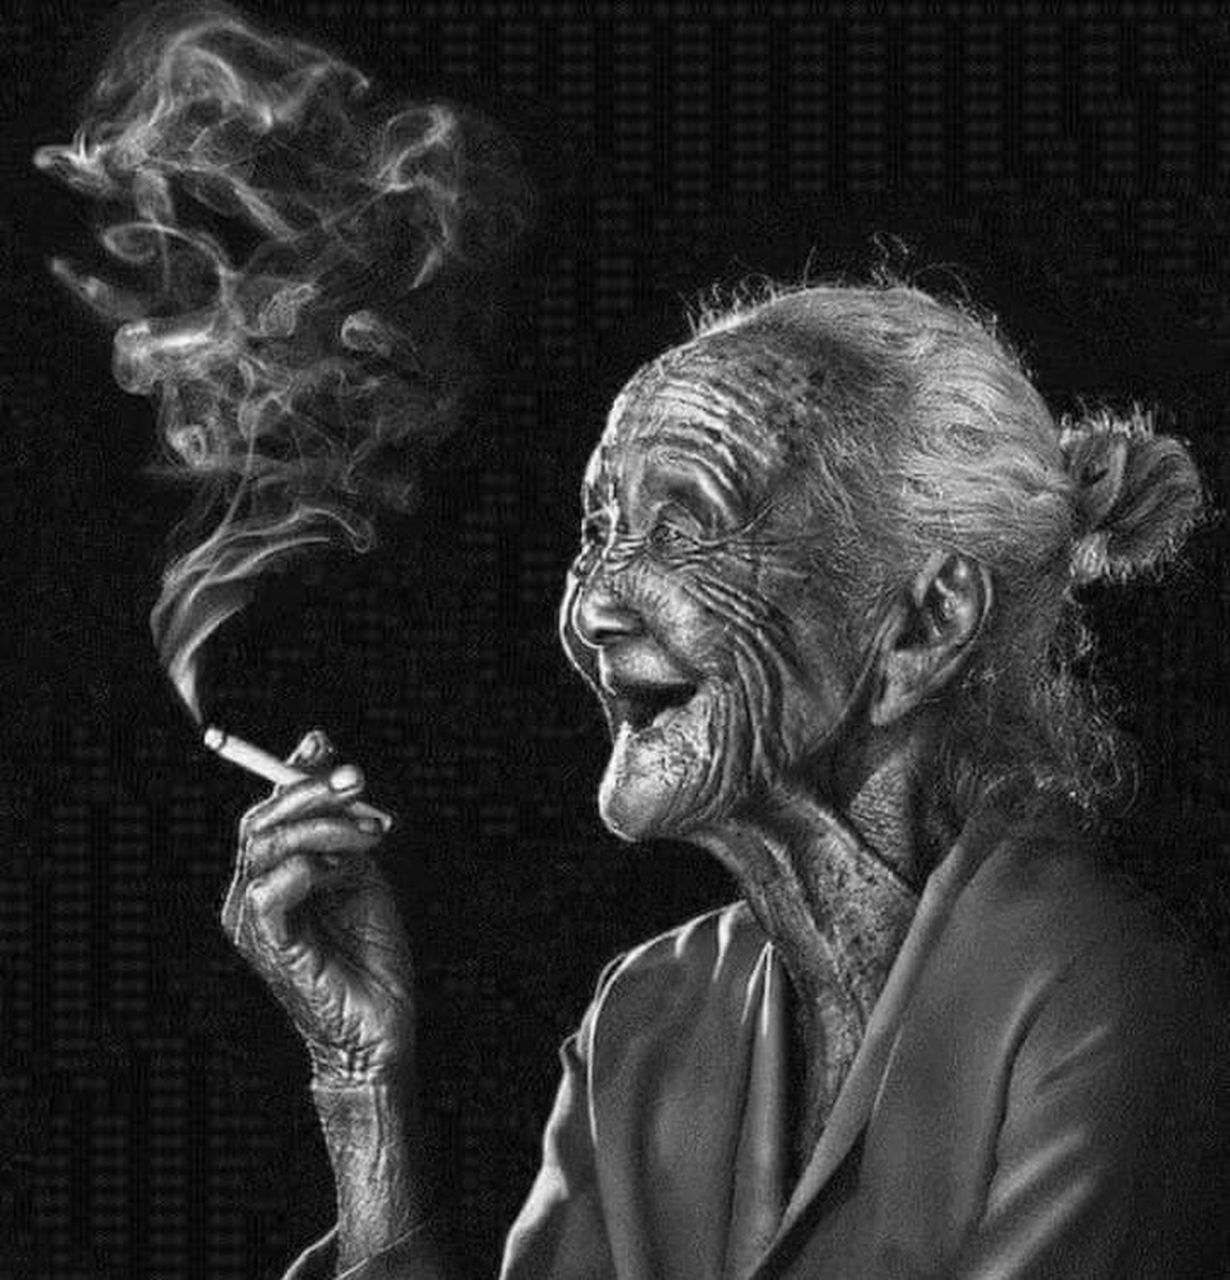 black background, smoking issues, smoking - activity, smoke - physical structure, studio shot, adult, bad habit, addiction, one person, adults only, one man only, human body part, people, headshot, indoors, only men, close-up, marijuana - herbal cannabis, cigar, human hand, males, portrait, day